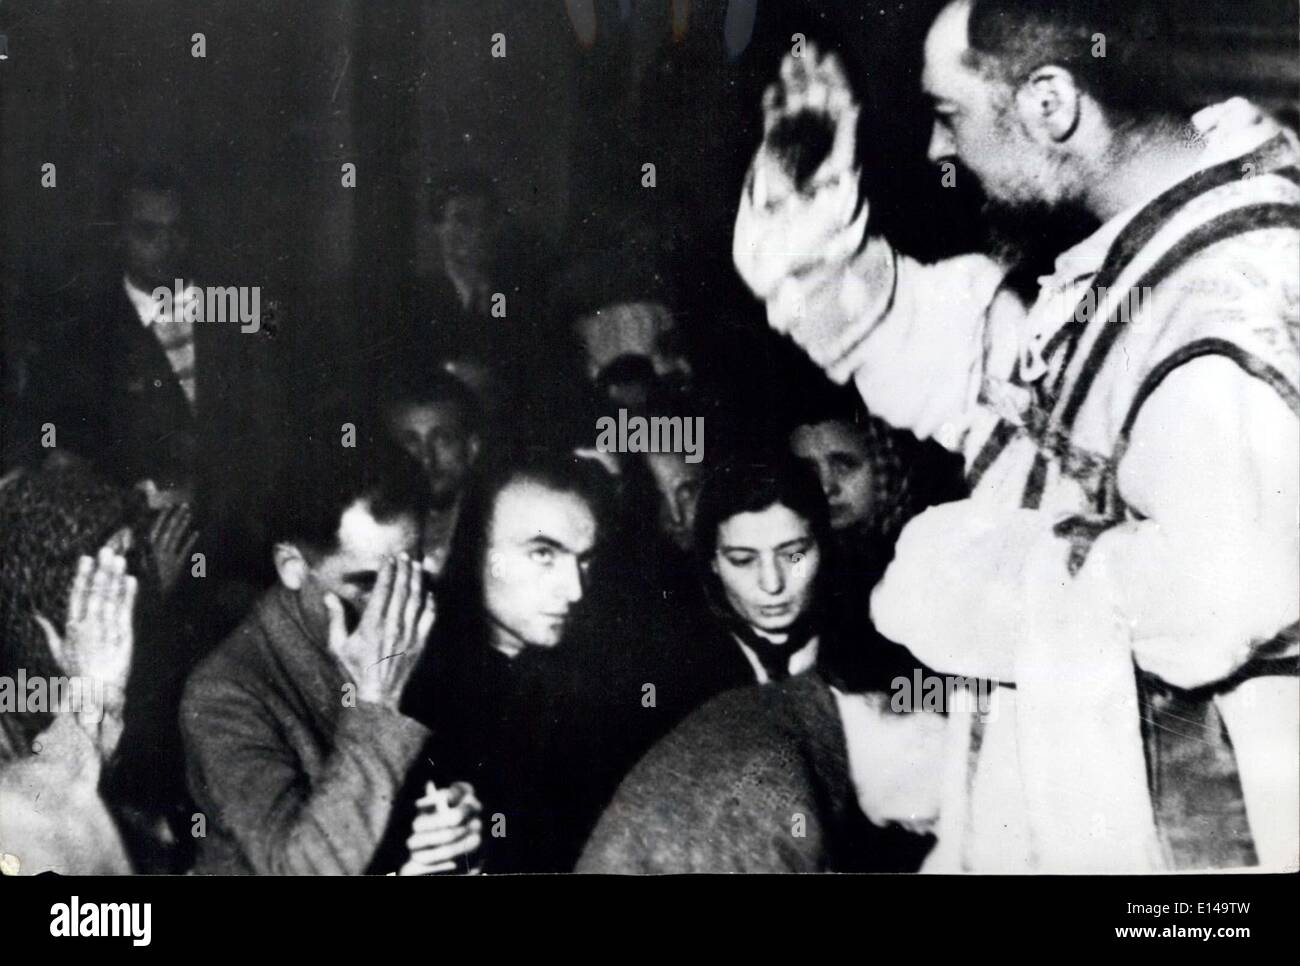 Apr. 17, 2012 - Picture Shows:- Padre Pio as he blesses the faithful in the church of the Capuchin convent. The stigma on his right hand is clearly visible. - Stock Image